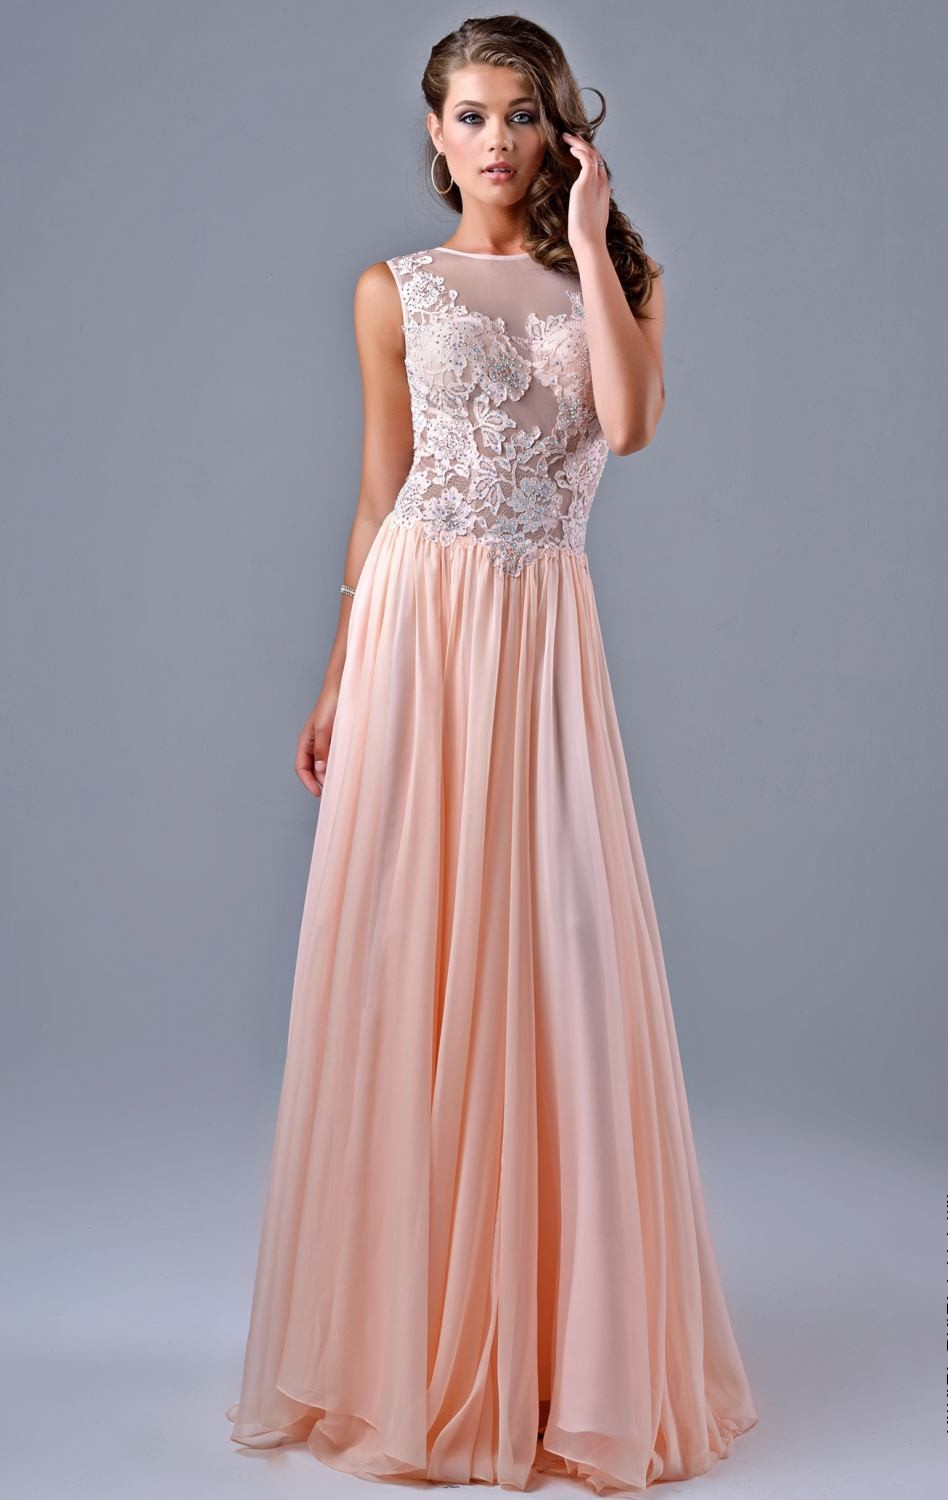 Free Shipping 2015 New Arrival Soft Pink Chiffon Prom Dress Low V